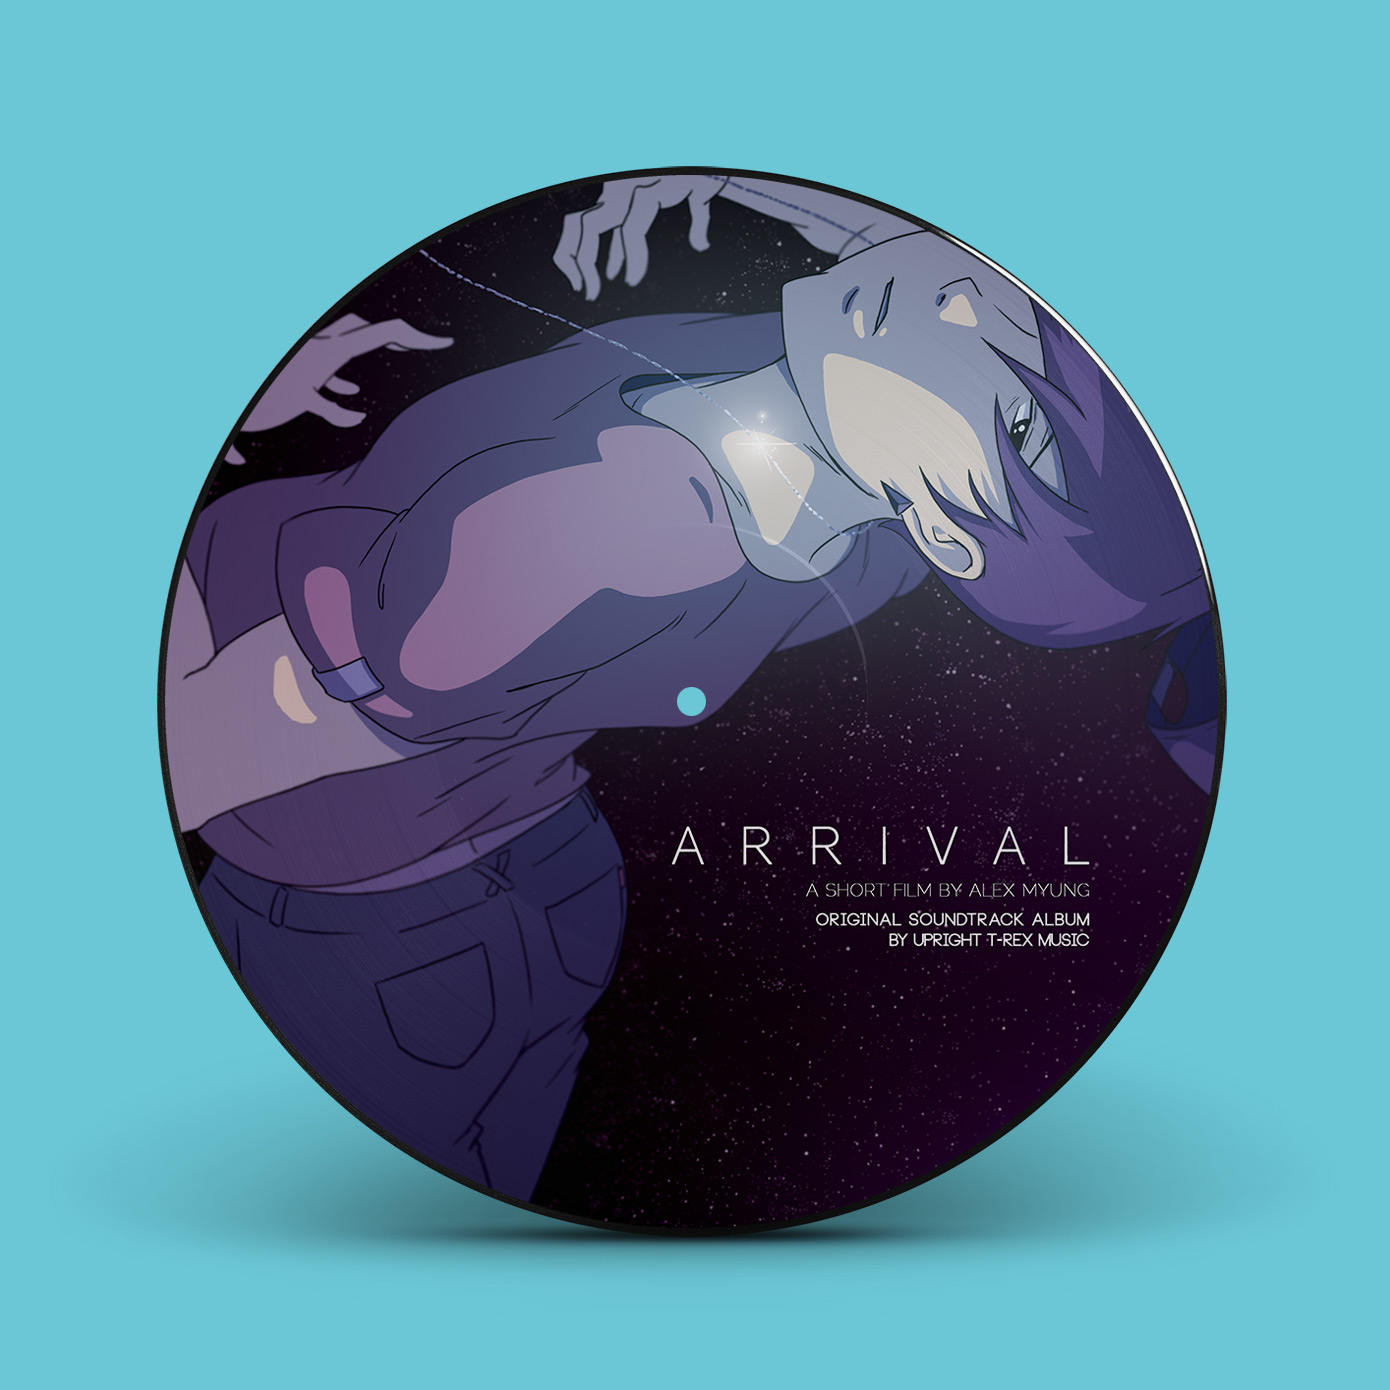 Arrival (Short Film Sounudtrack) - Picture Disc